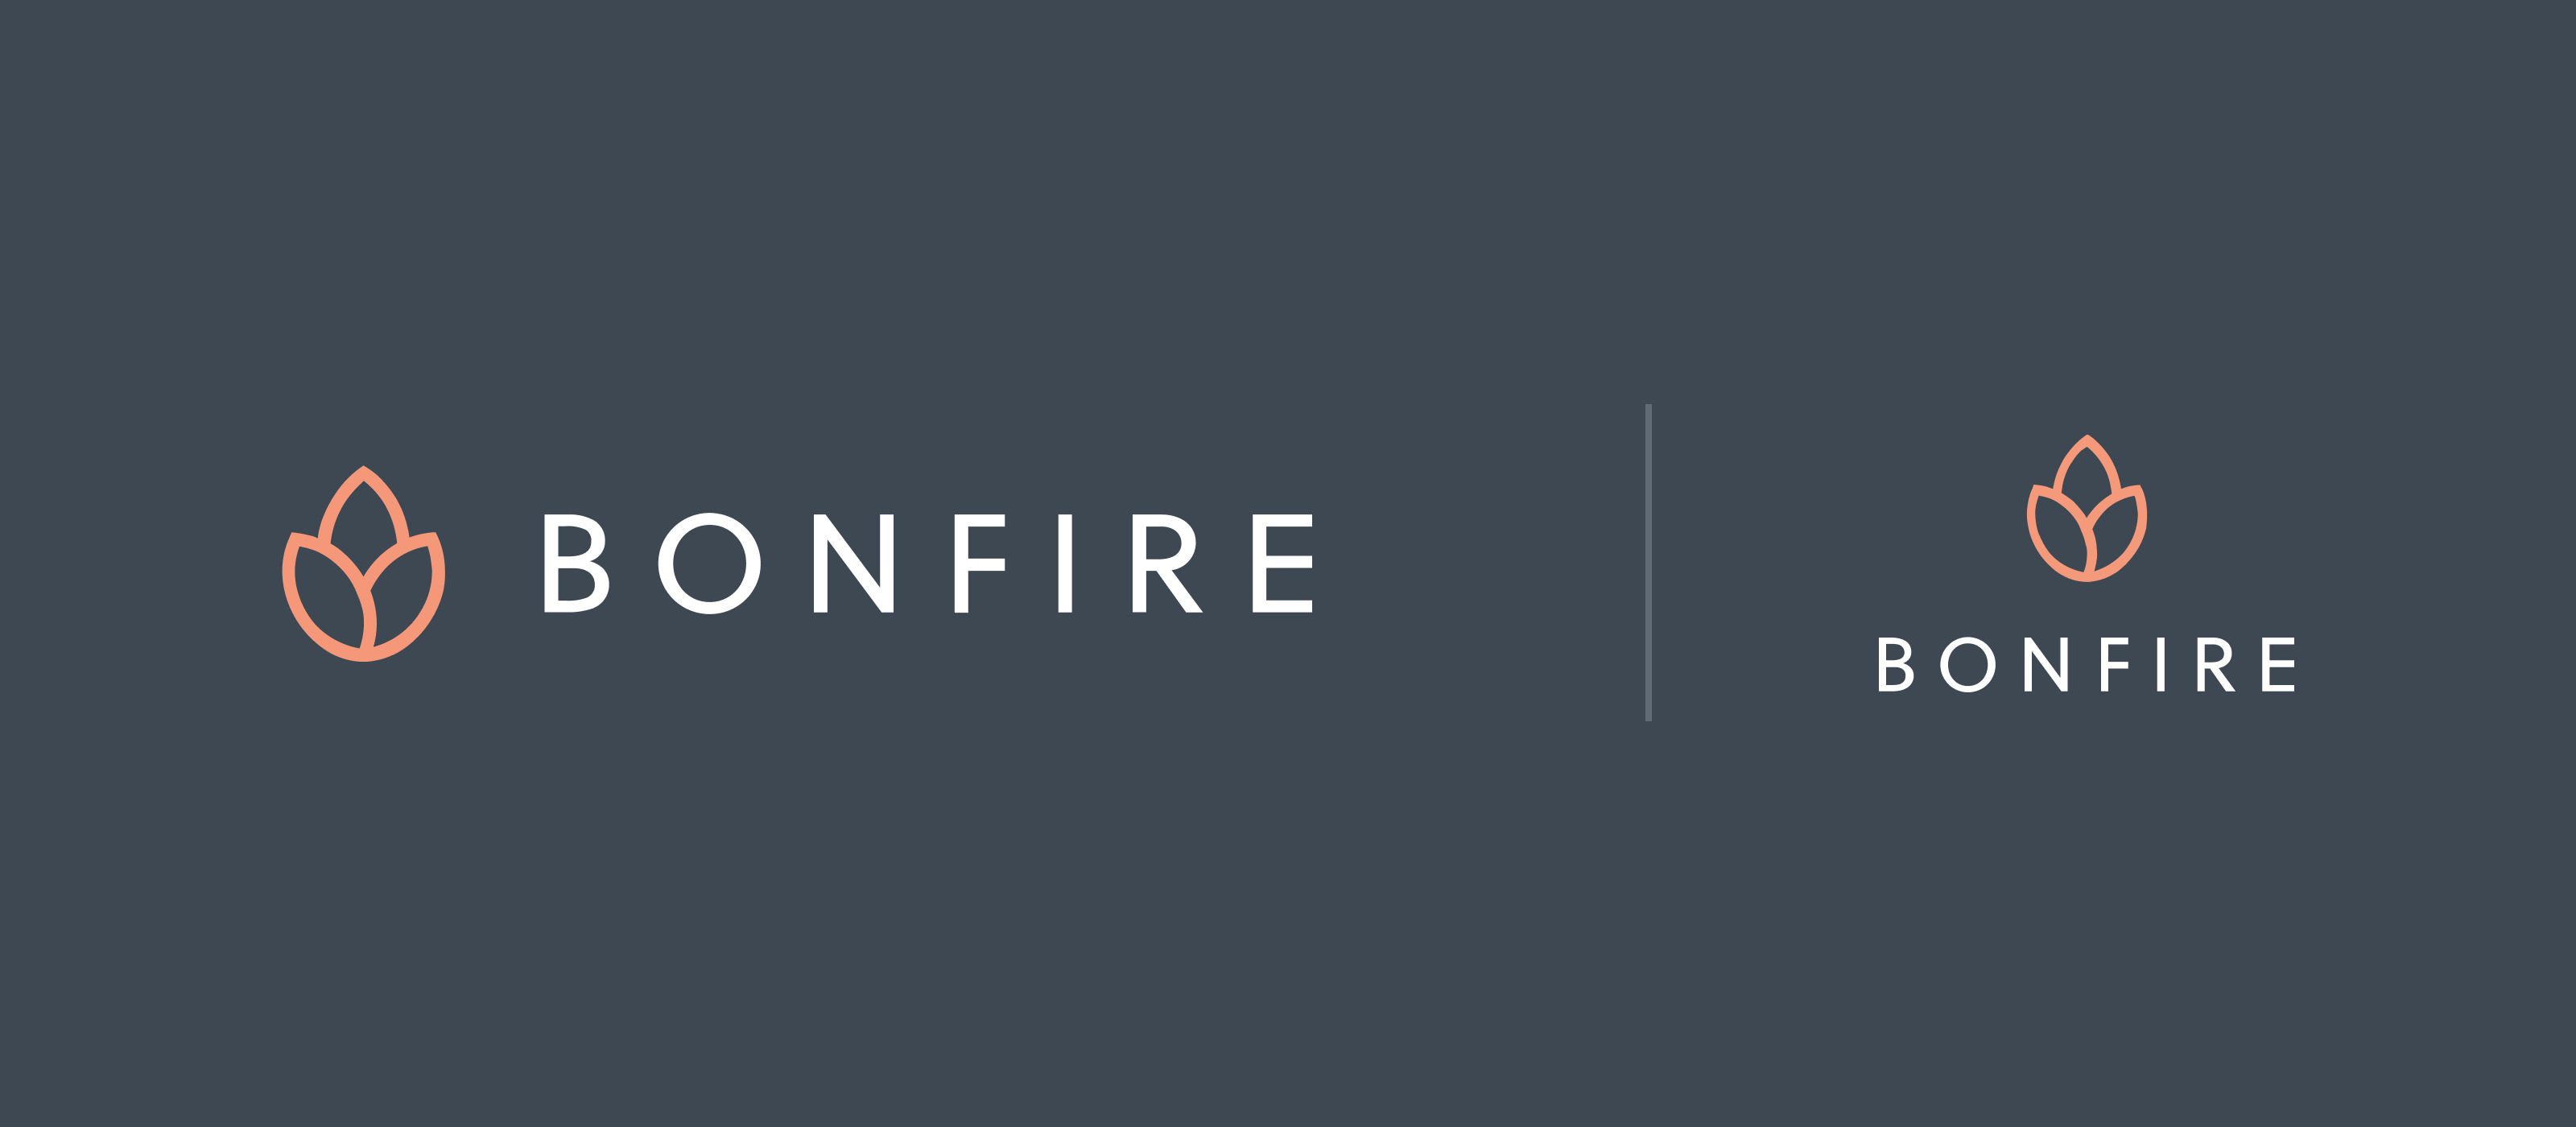 Alternate Bonfire logo example